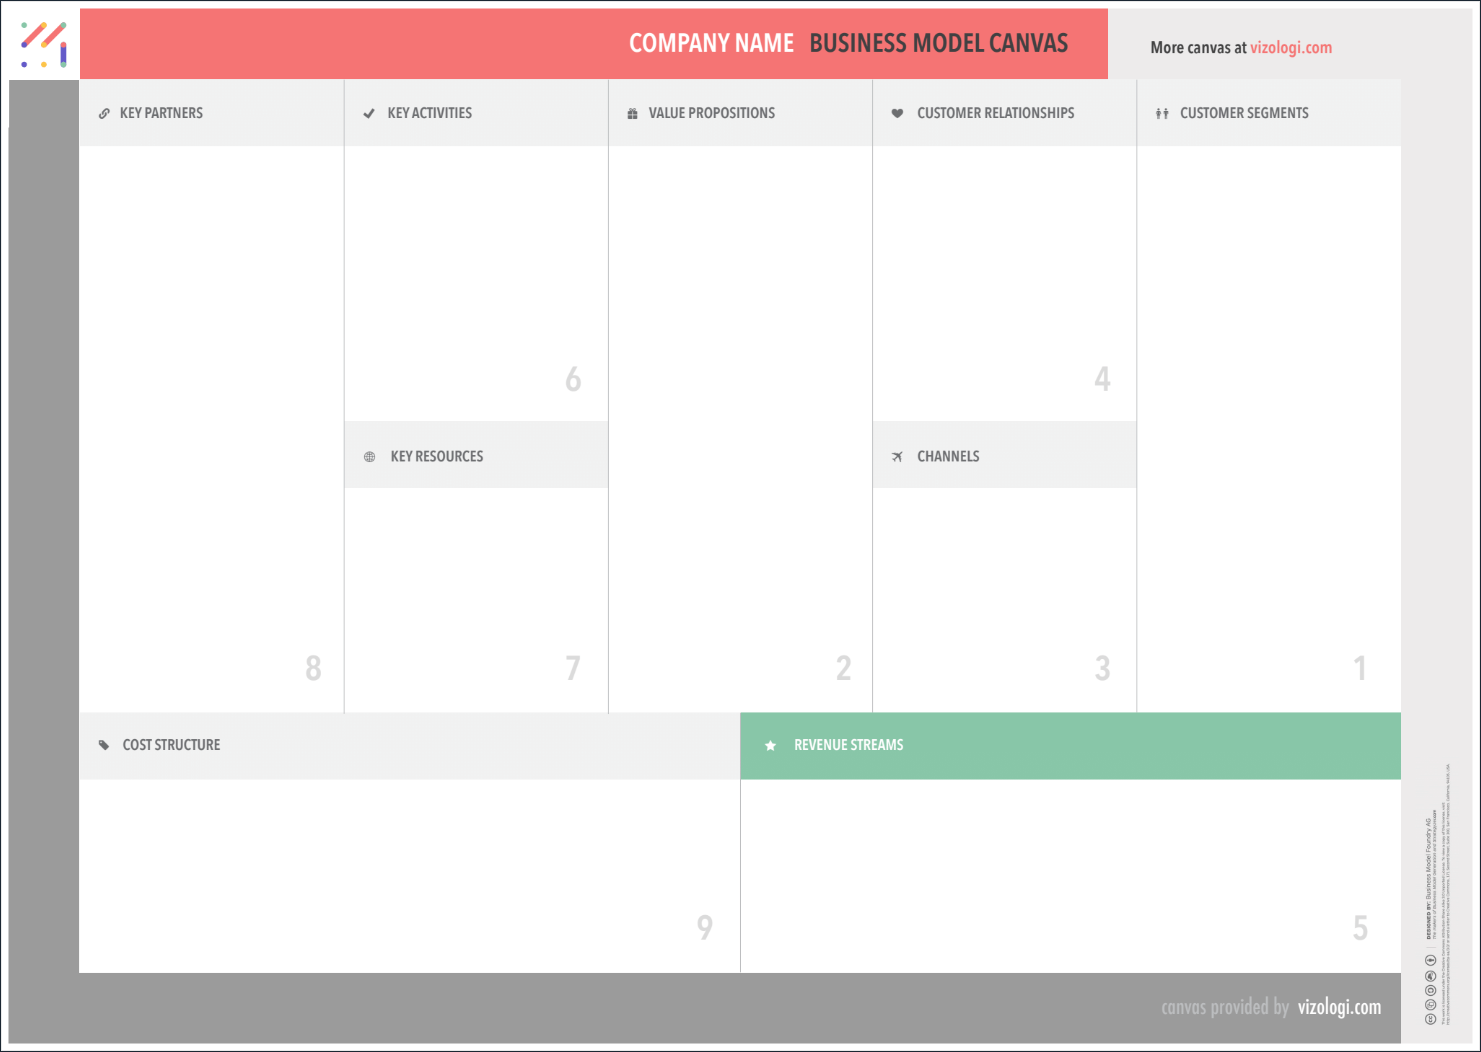 Quick guide - How to build your business model canvas | Business